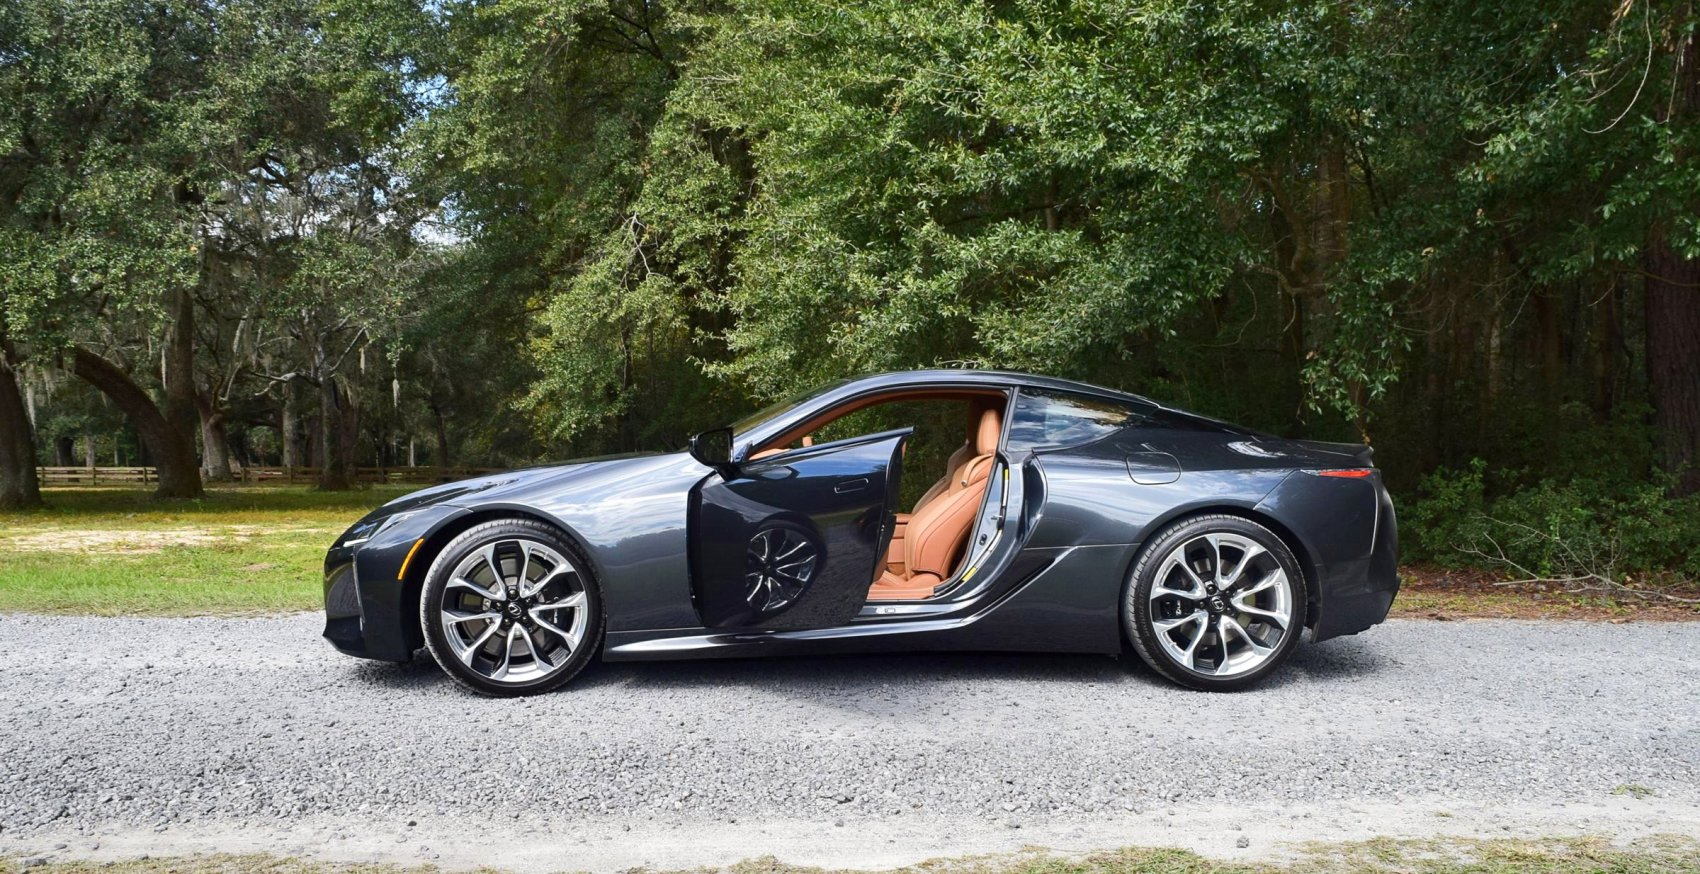 2018 Lexus Lc500 Supercar Of The Year Road Test Review